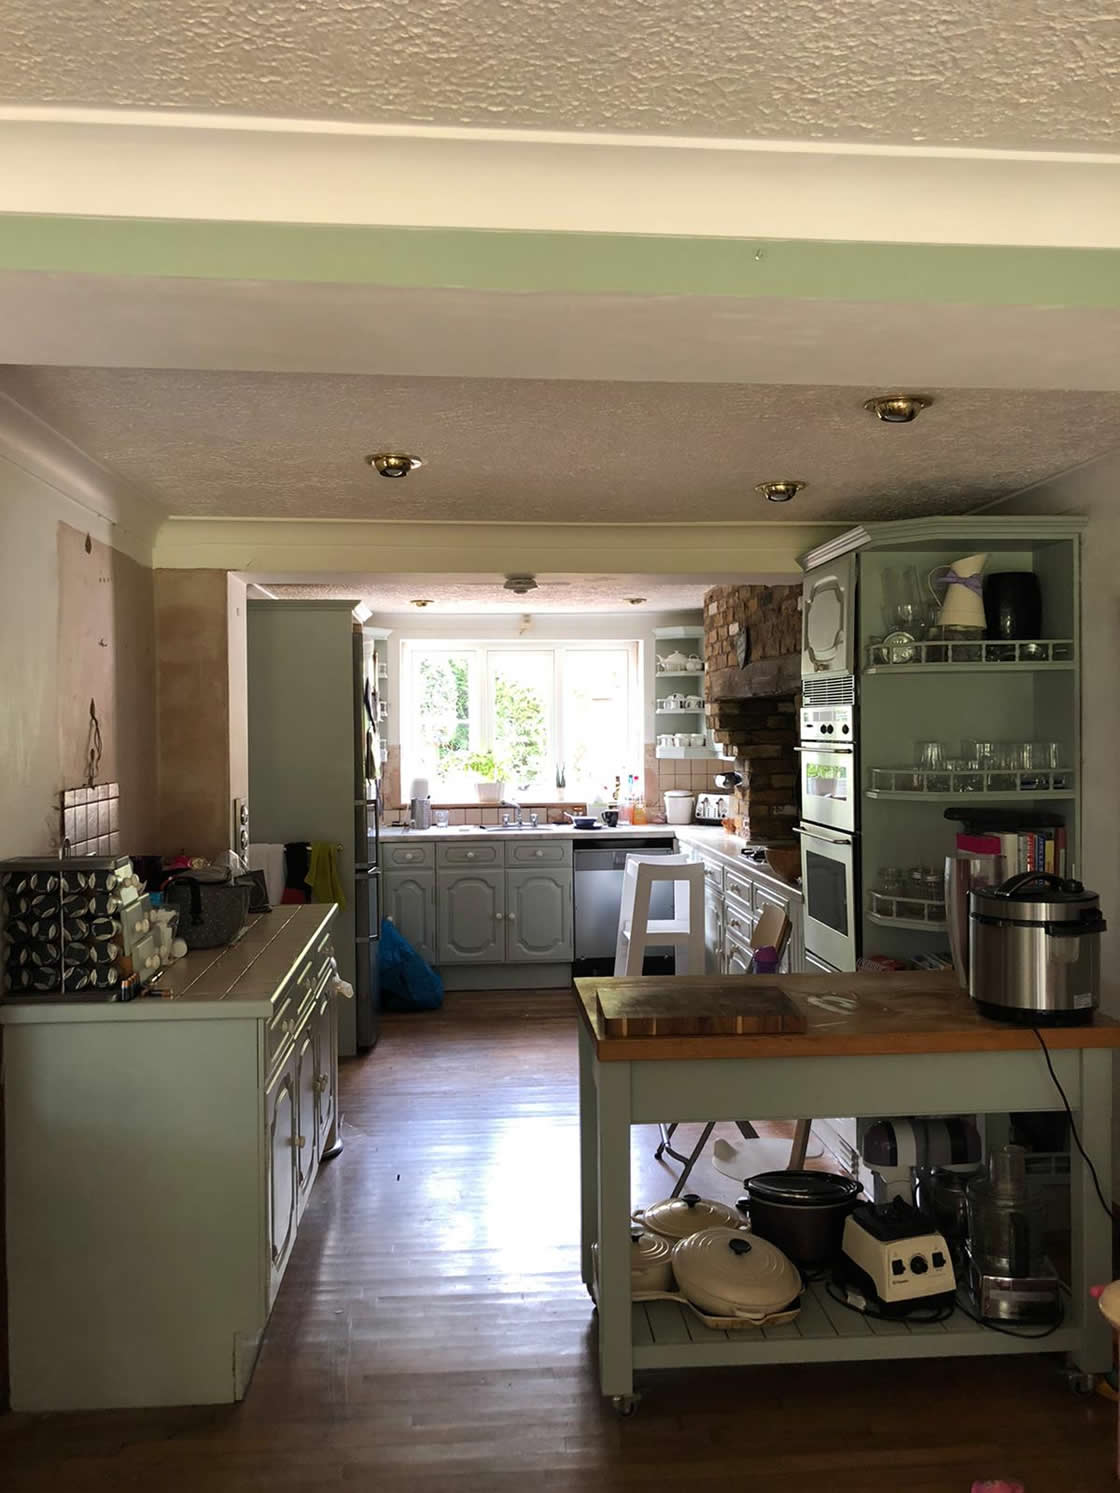 Caterham Painted Kitchen Project - Before 3